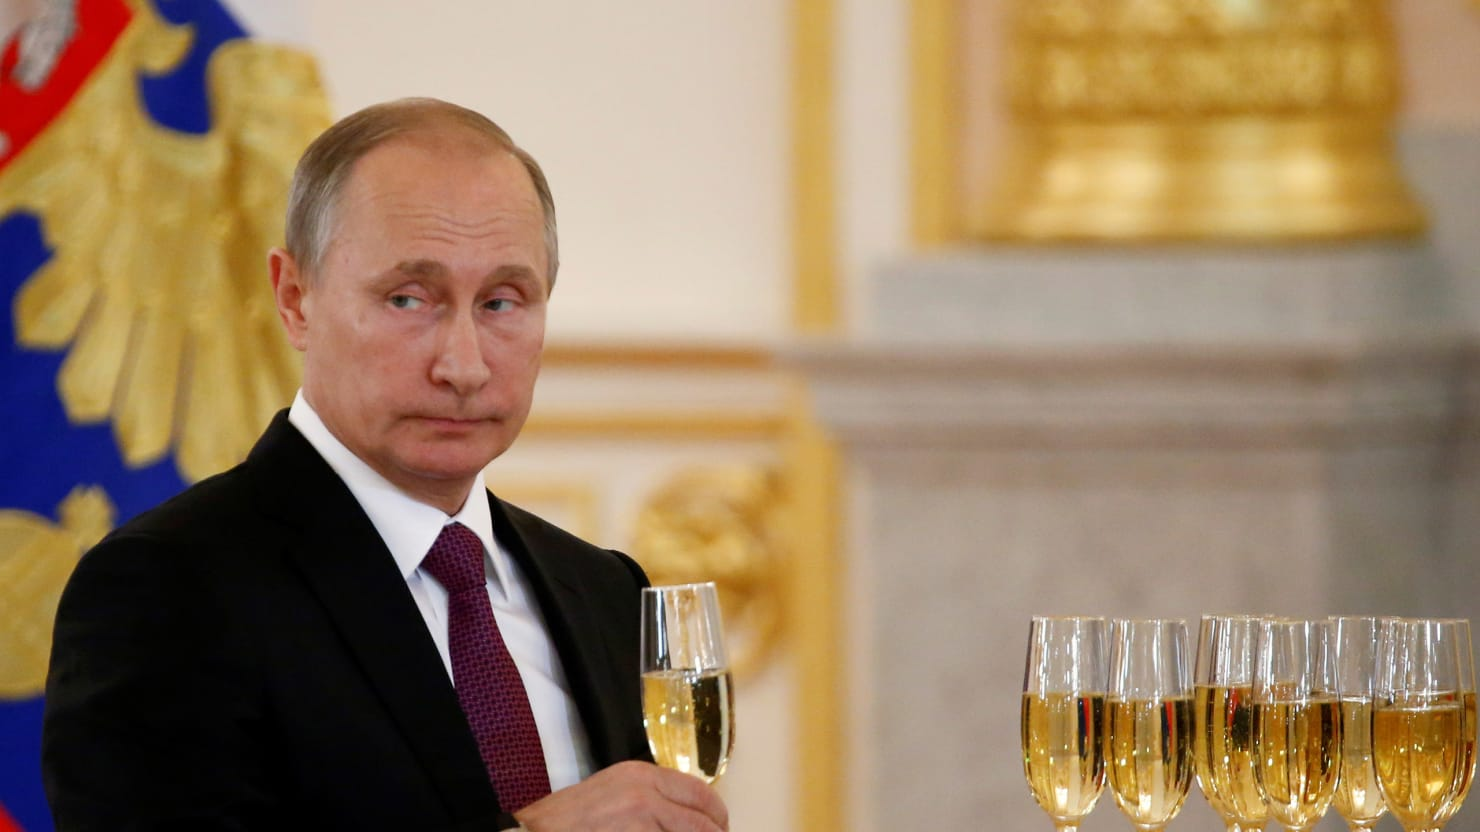 Image result for PUTIN CELEBRATING ELECTION OF TRUMP